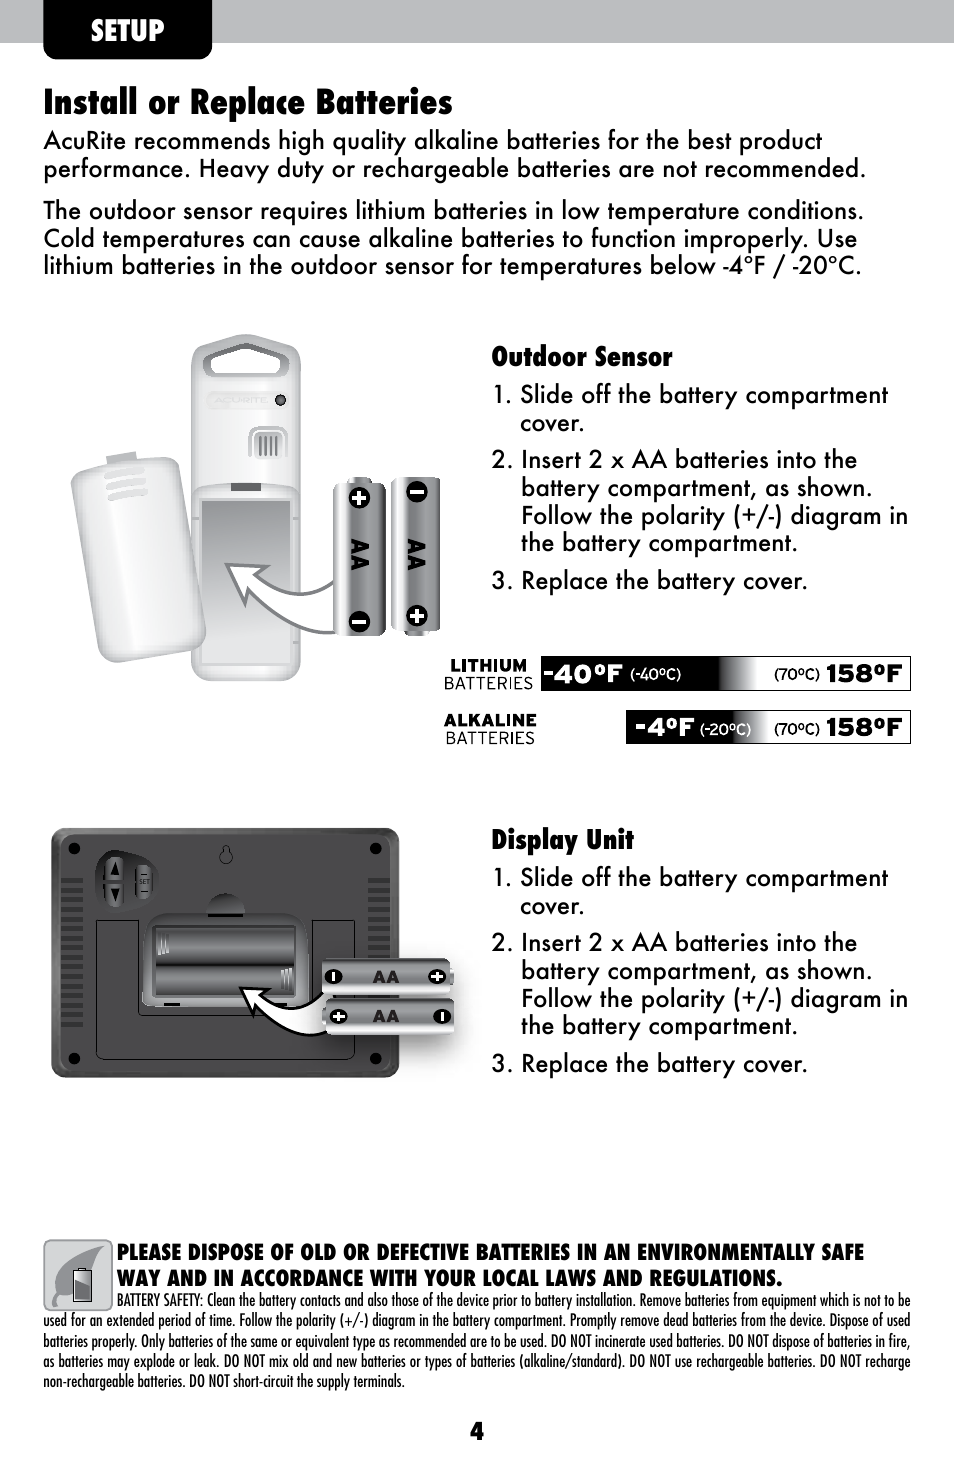 Install Or Replace Batteries Setup Outdoor Sensor Acurite 00621 Alkaline Battery Diagram Weather Station User Manual Page 4 12